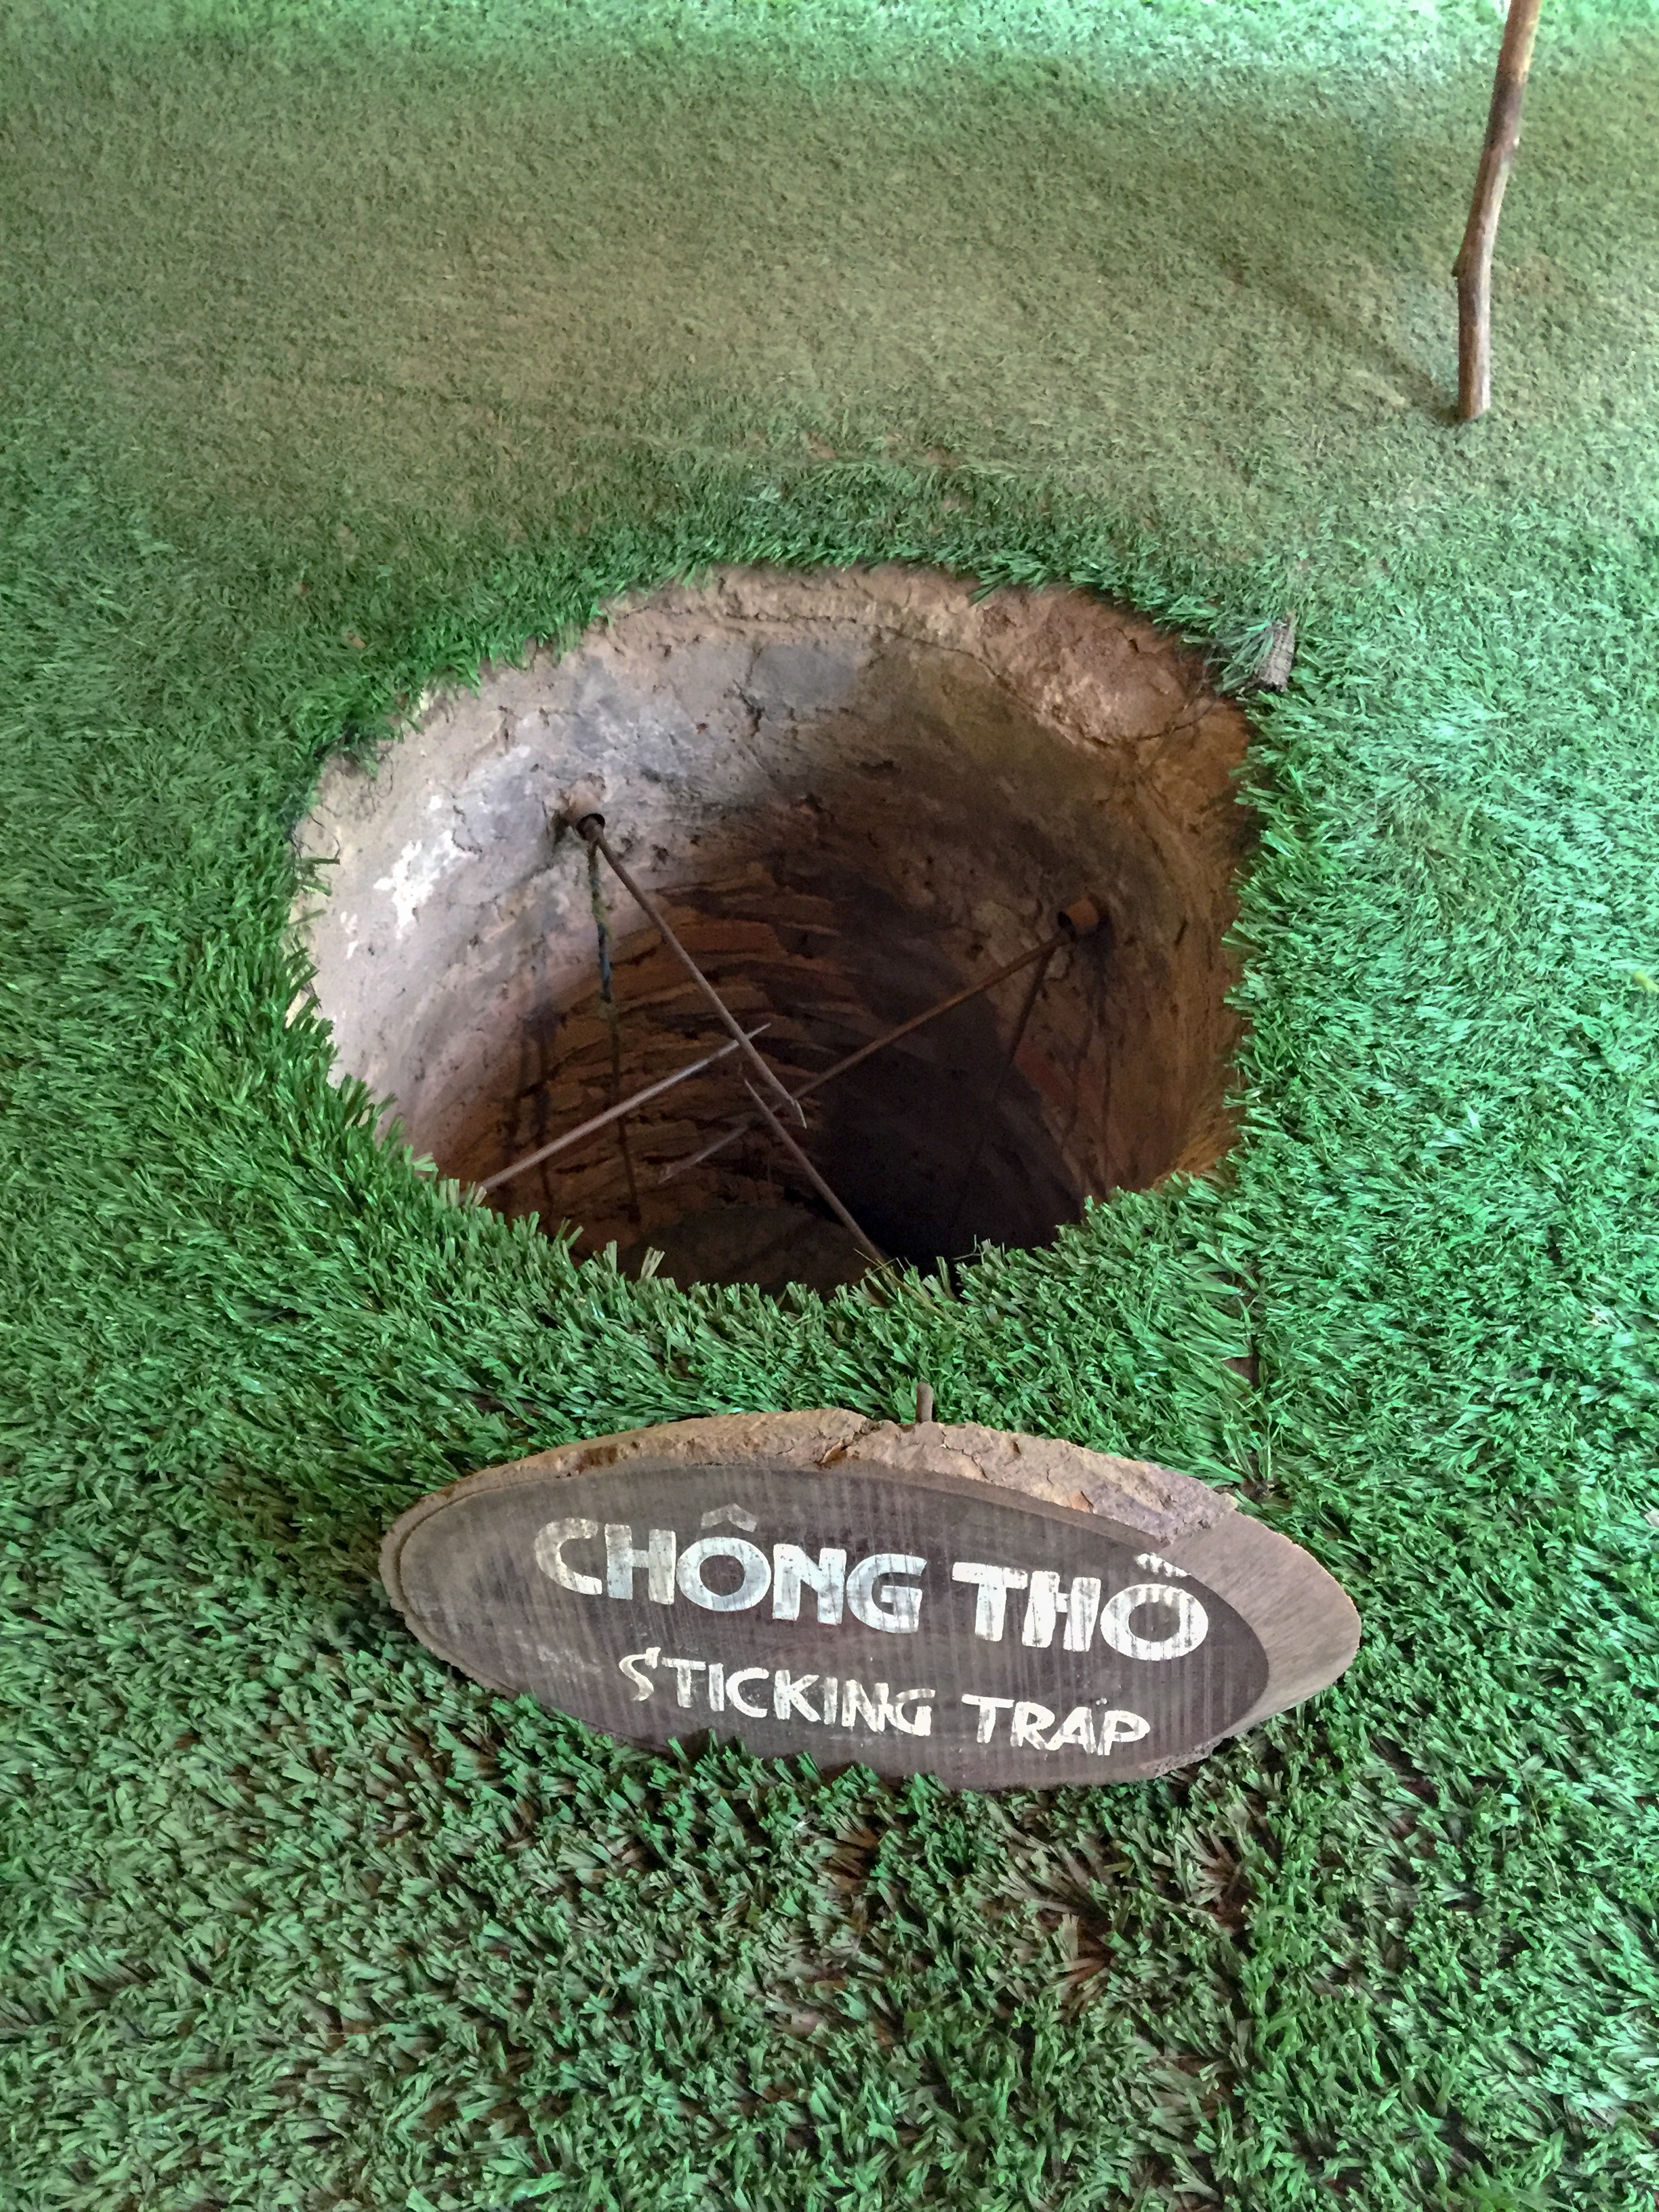 A Viet Cong trap designed to catch US soldiers